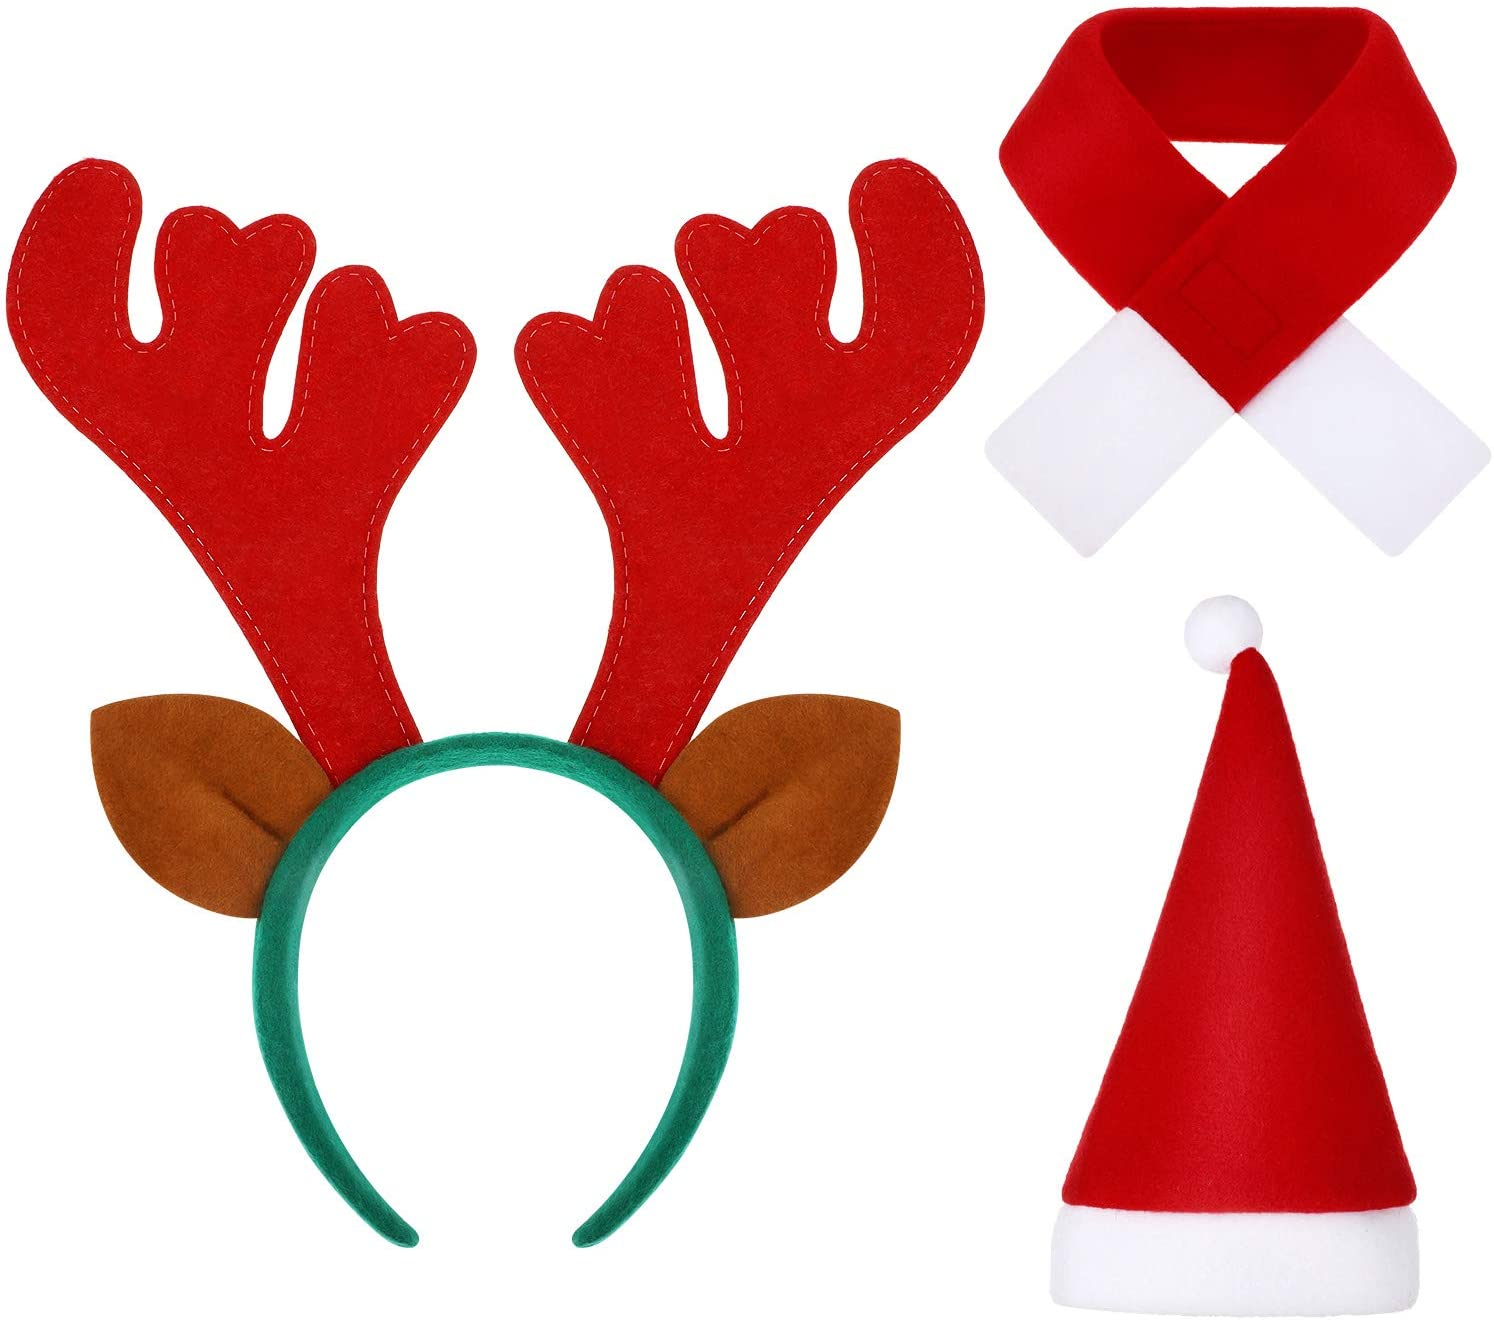 WILLBOND 3 Pieces Christmas Pet Costume Including Reindeer Antlers Headband with Ears Santa Hat and Holiday Scarf for Dog Puppy Cat